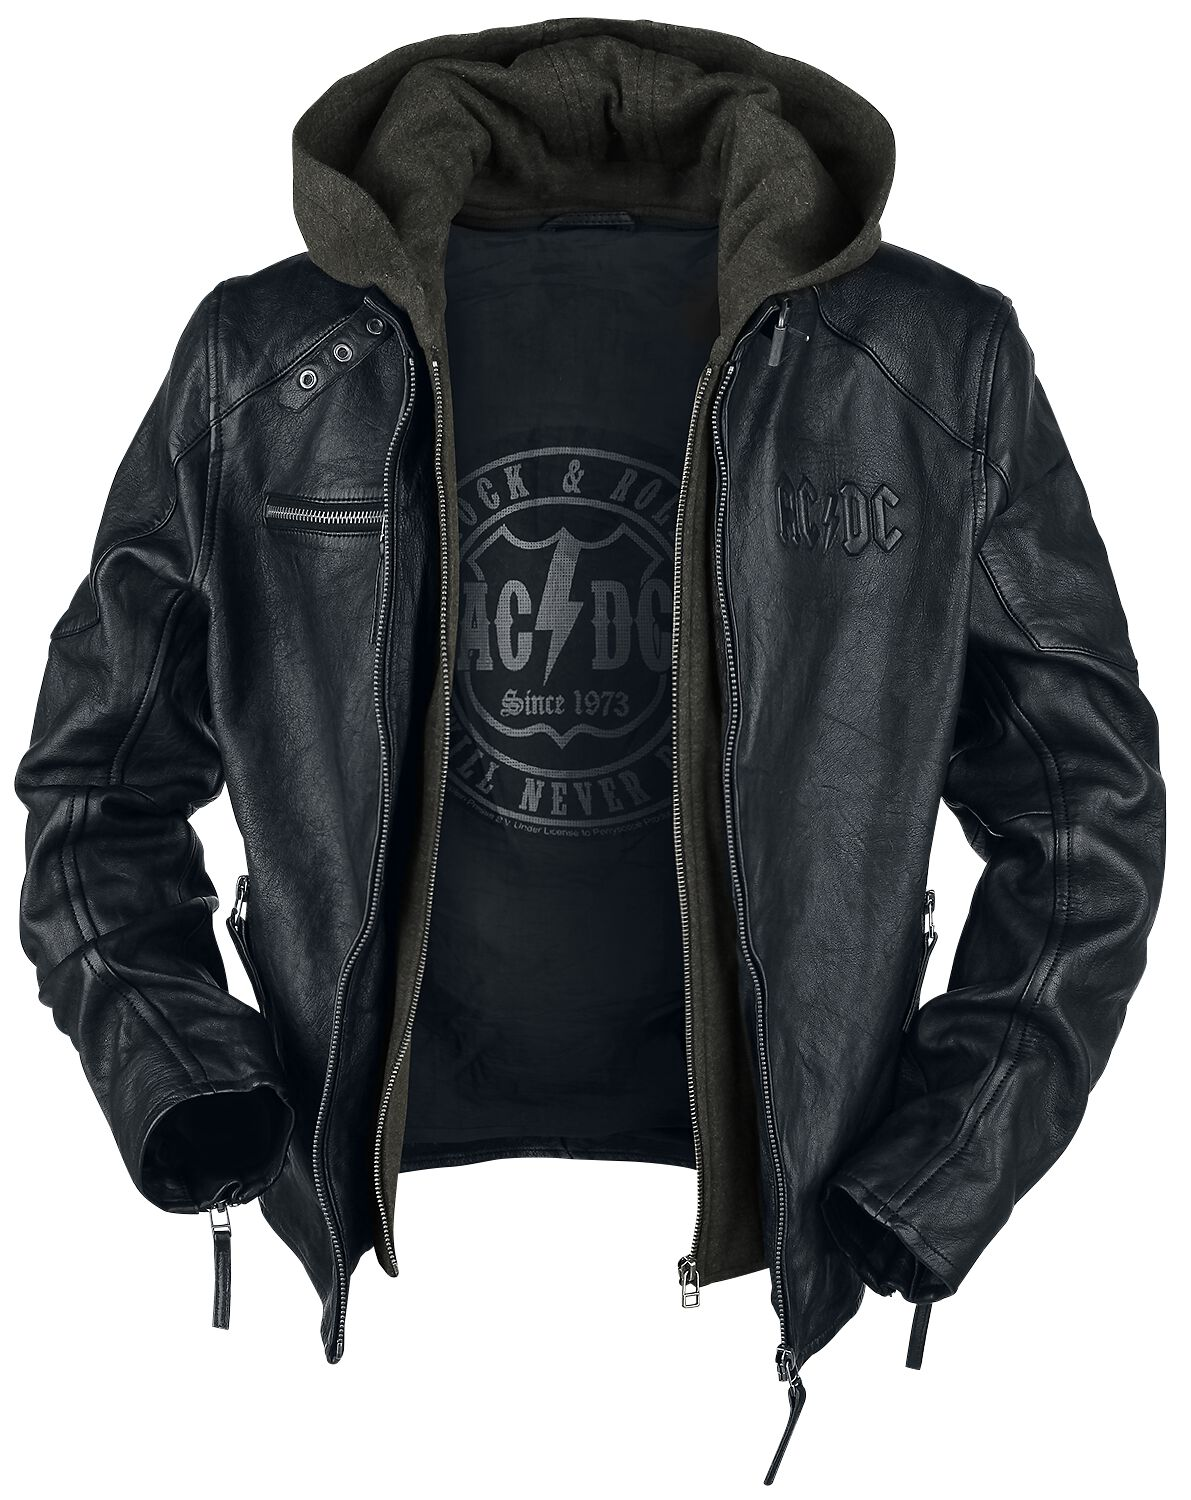 Rock and roll leather jacket